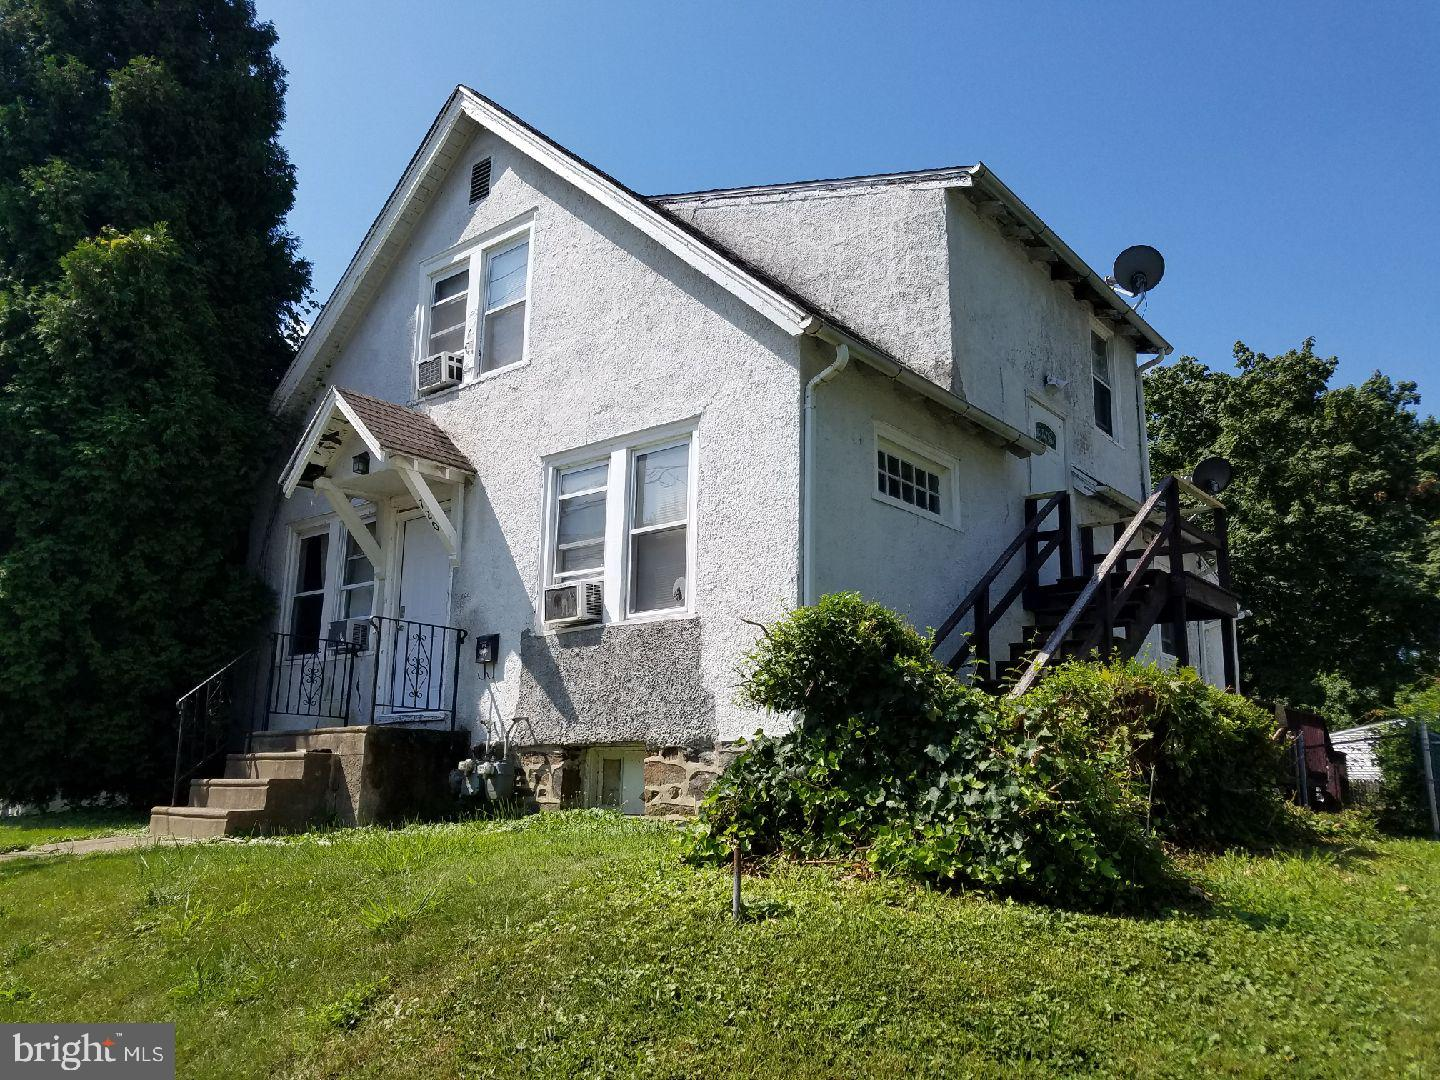 720 CLIFTON AVENUE, DARBY, PA 19023